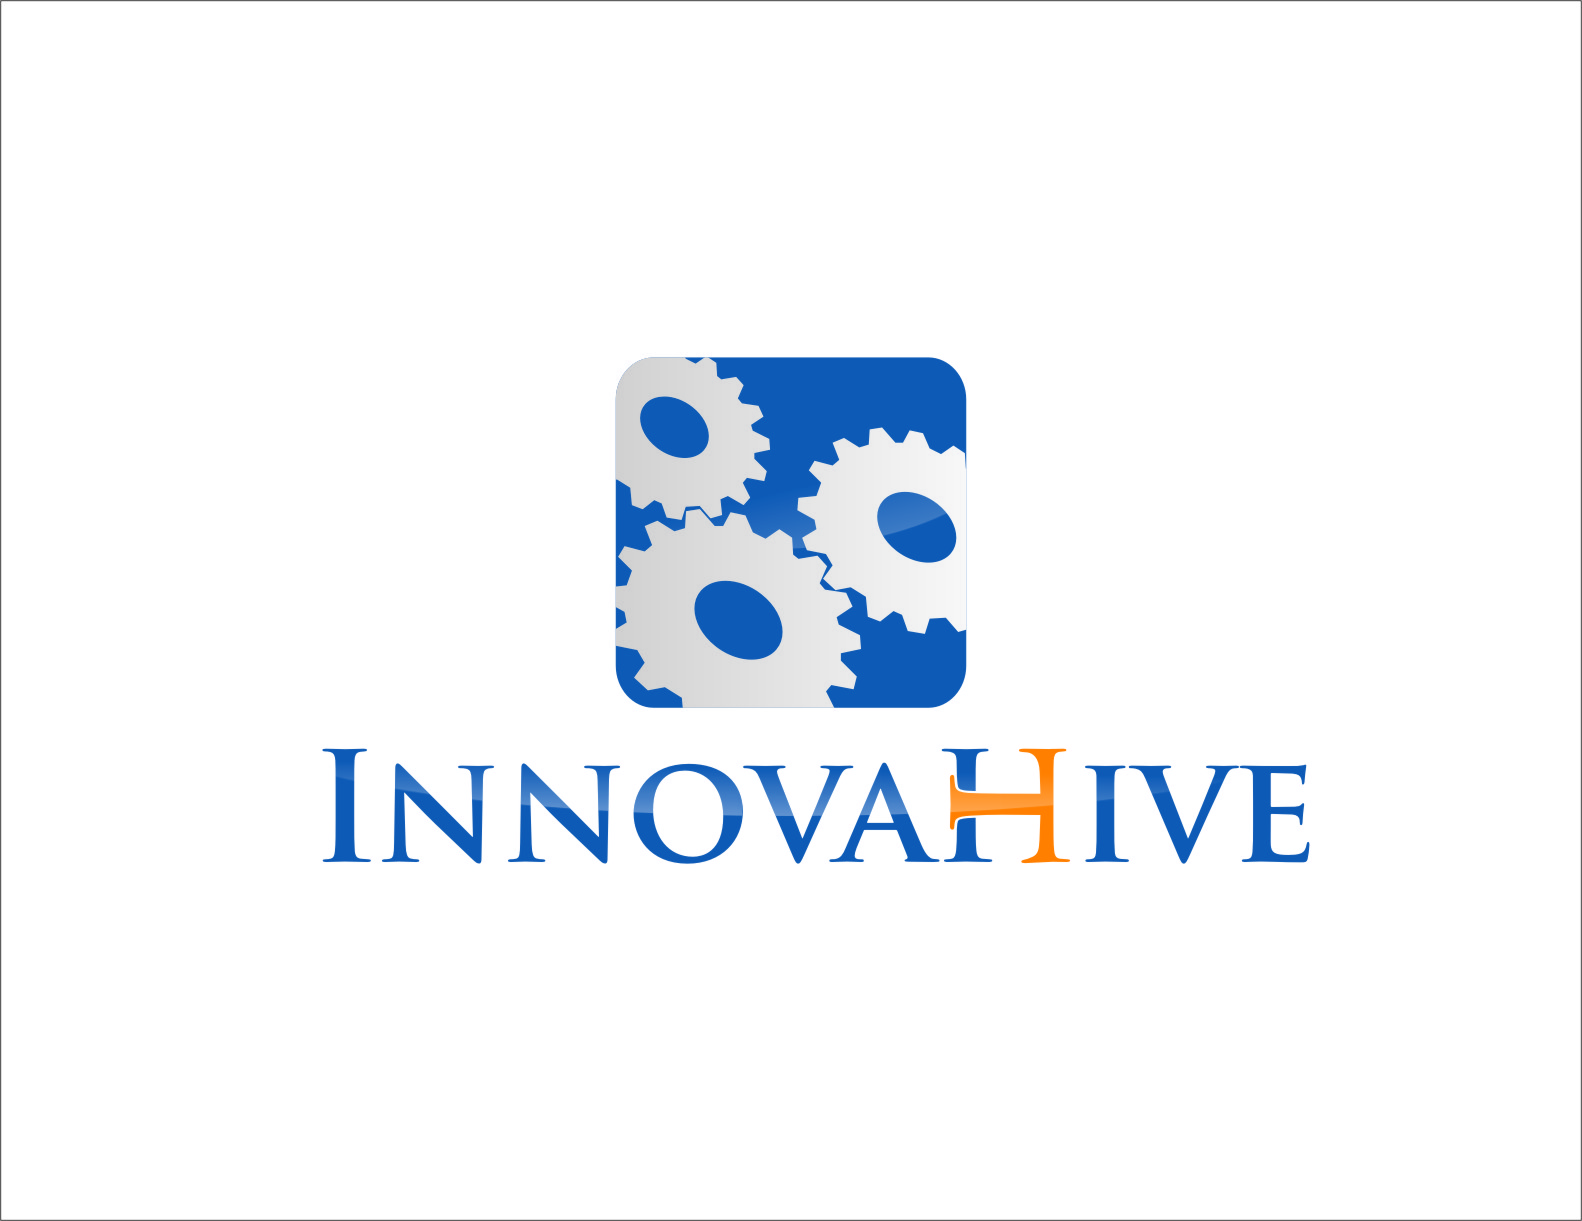 Logo Design by Ngepet_art - Entry No. 61 in the Logo Design Contest InnovaHive Logo Design.